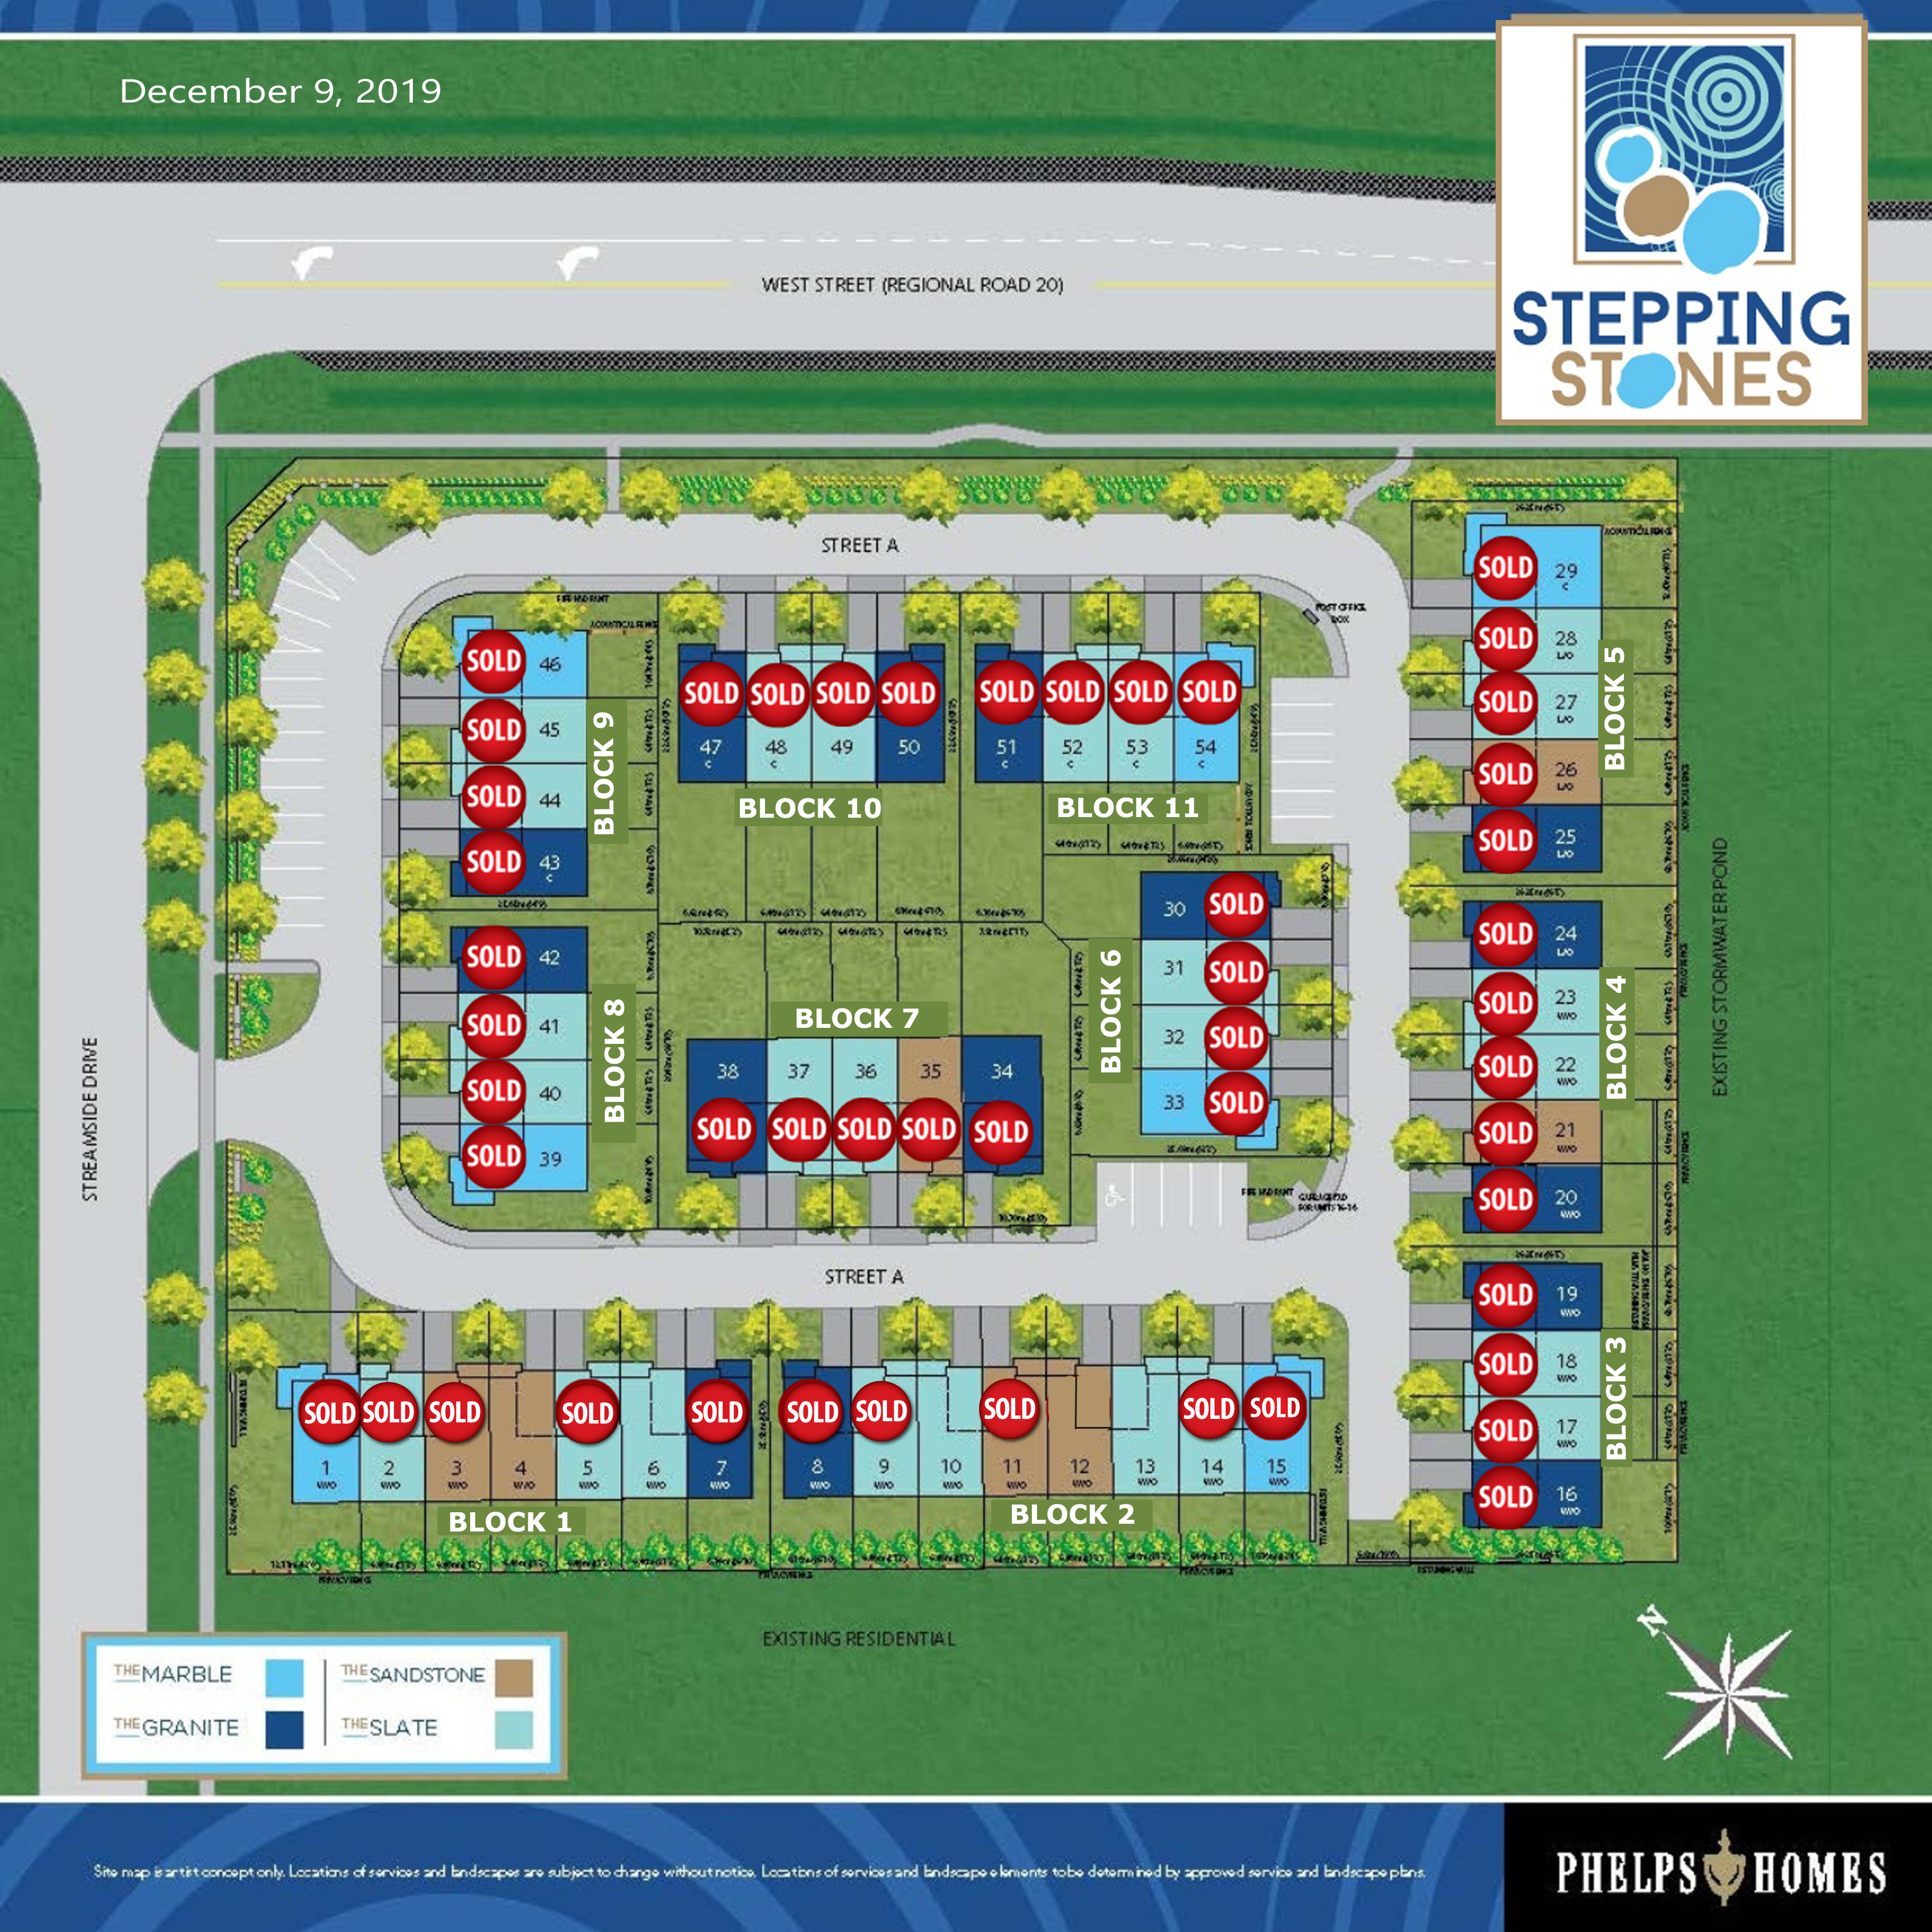 Stepping Stones Site Plan - 12.09